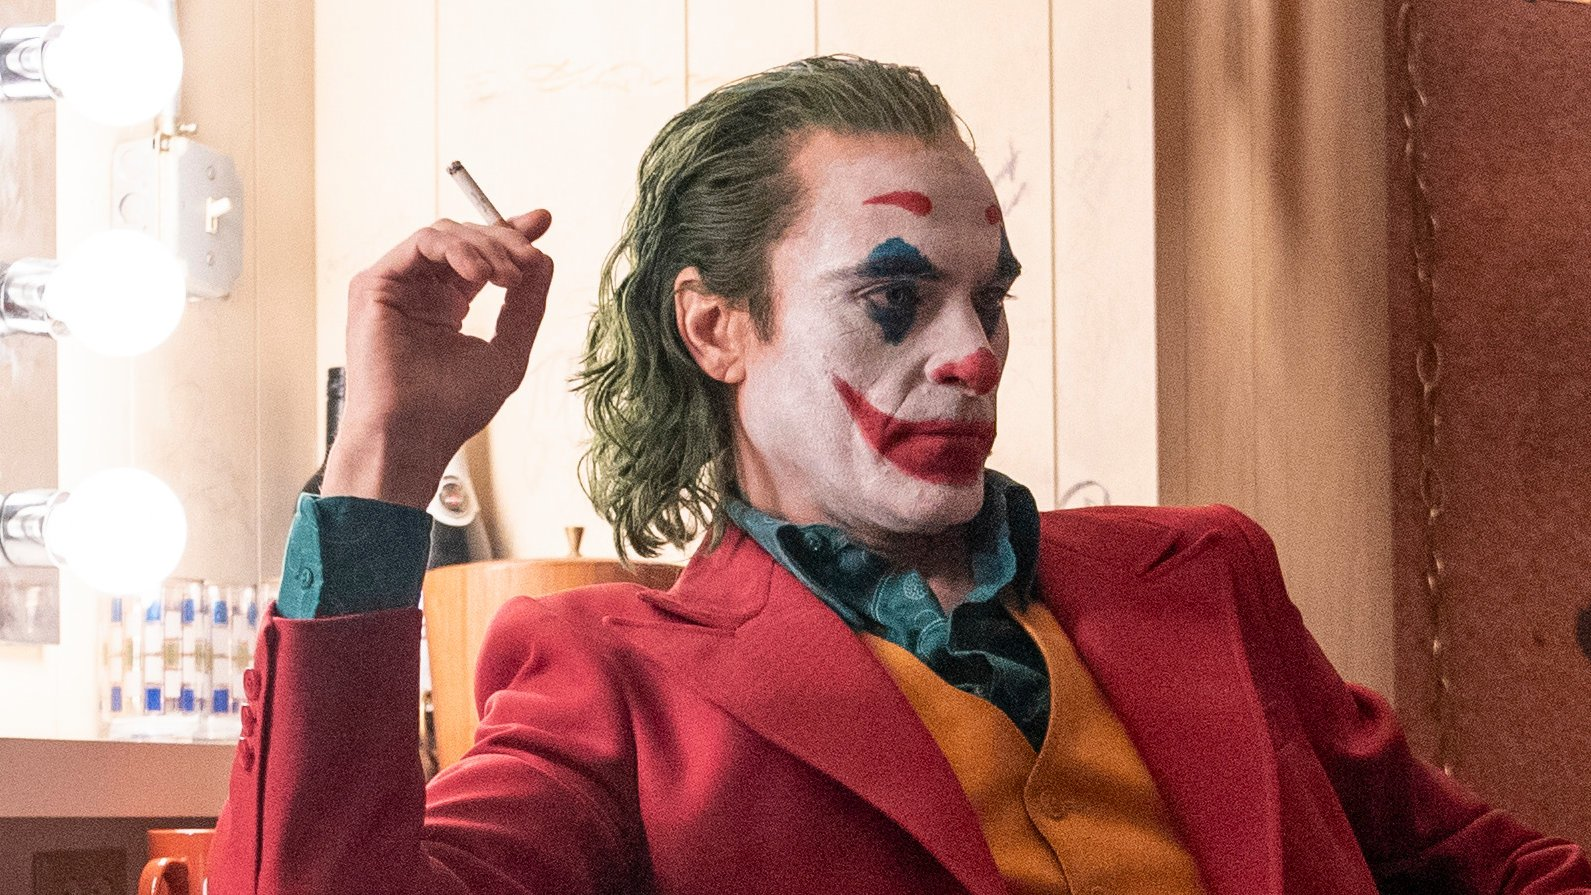 Joker 2 In Early Development, Will Be Set Years After The First